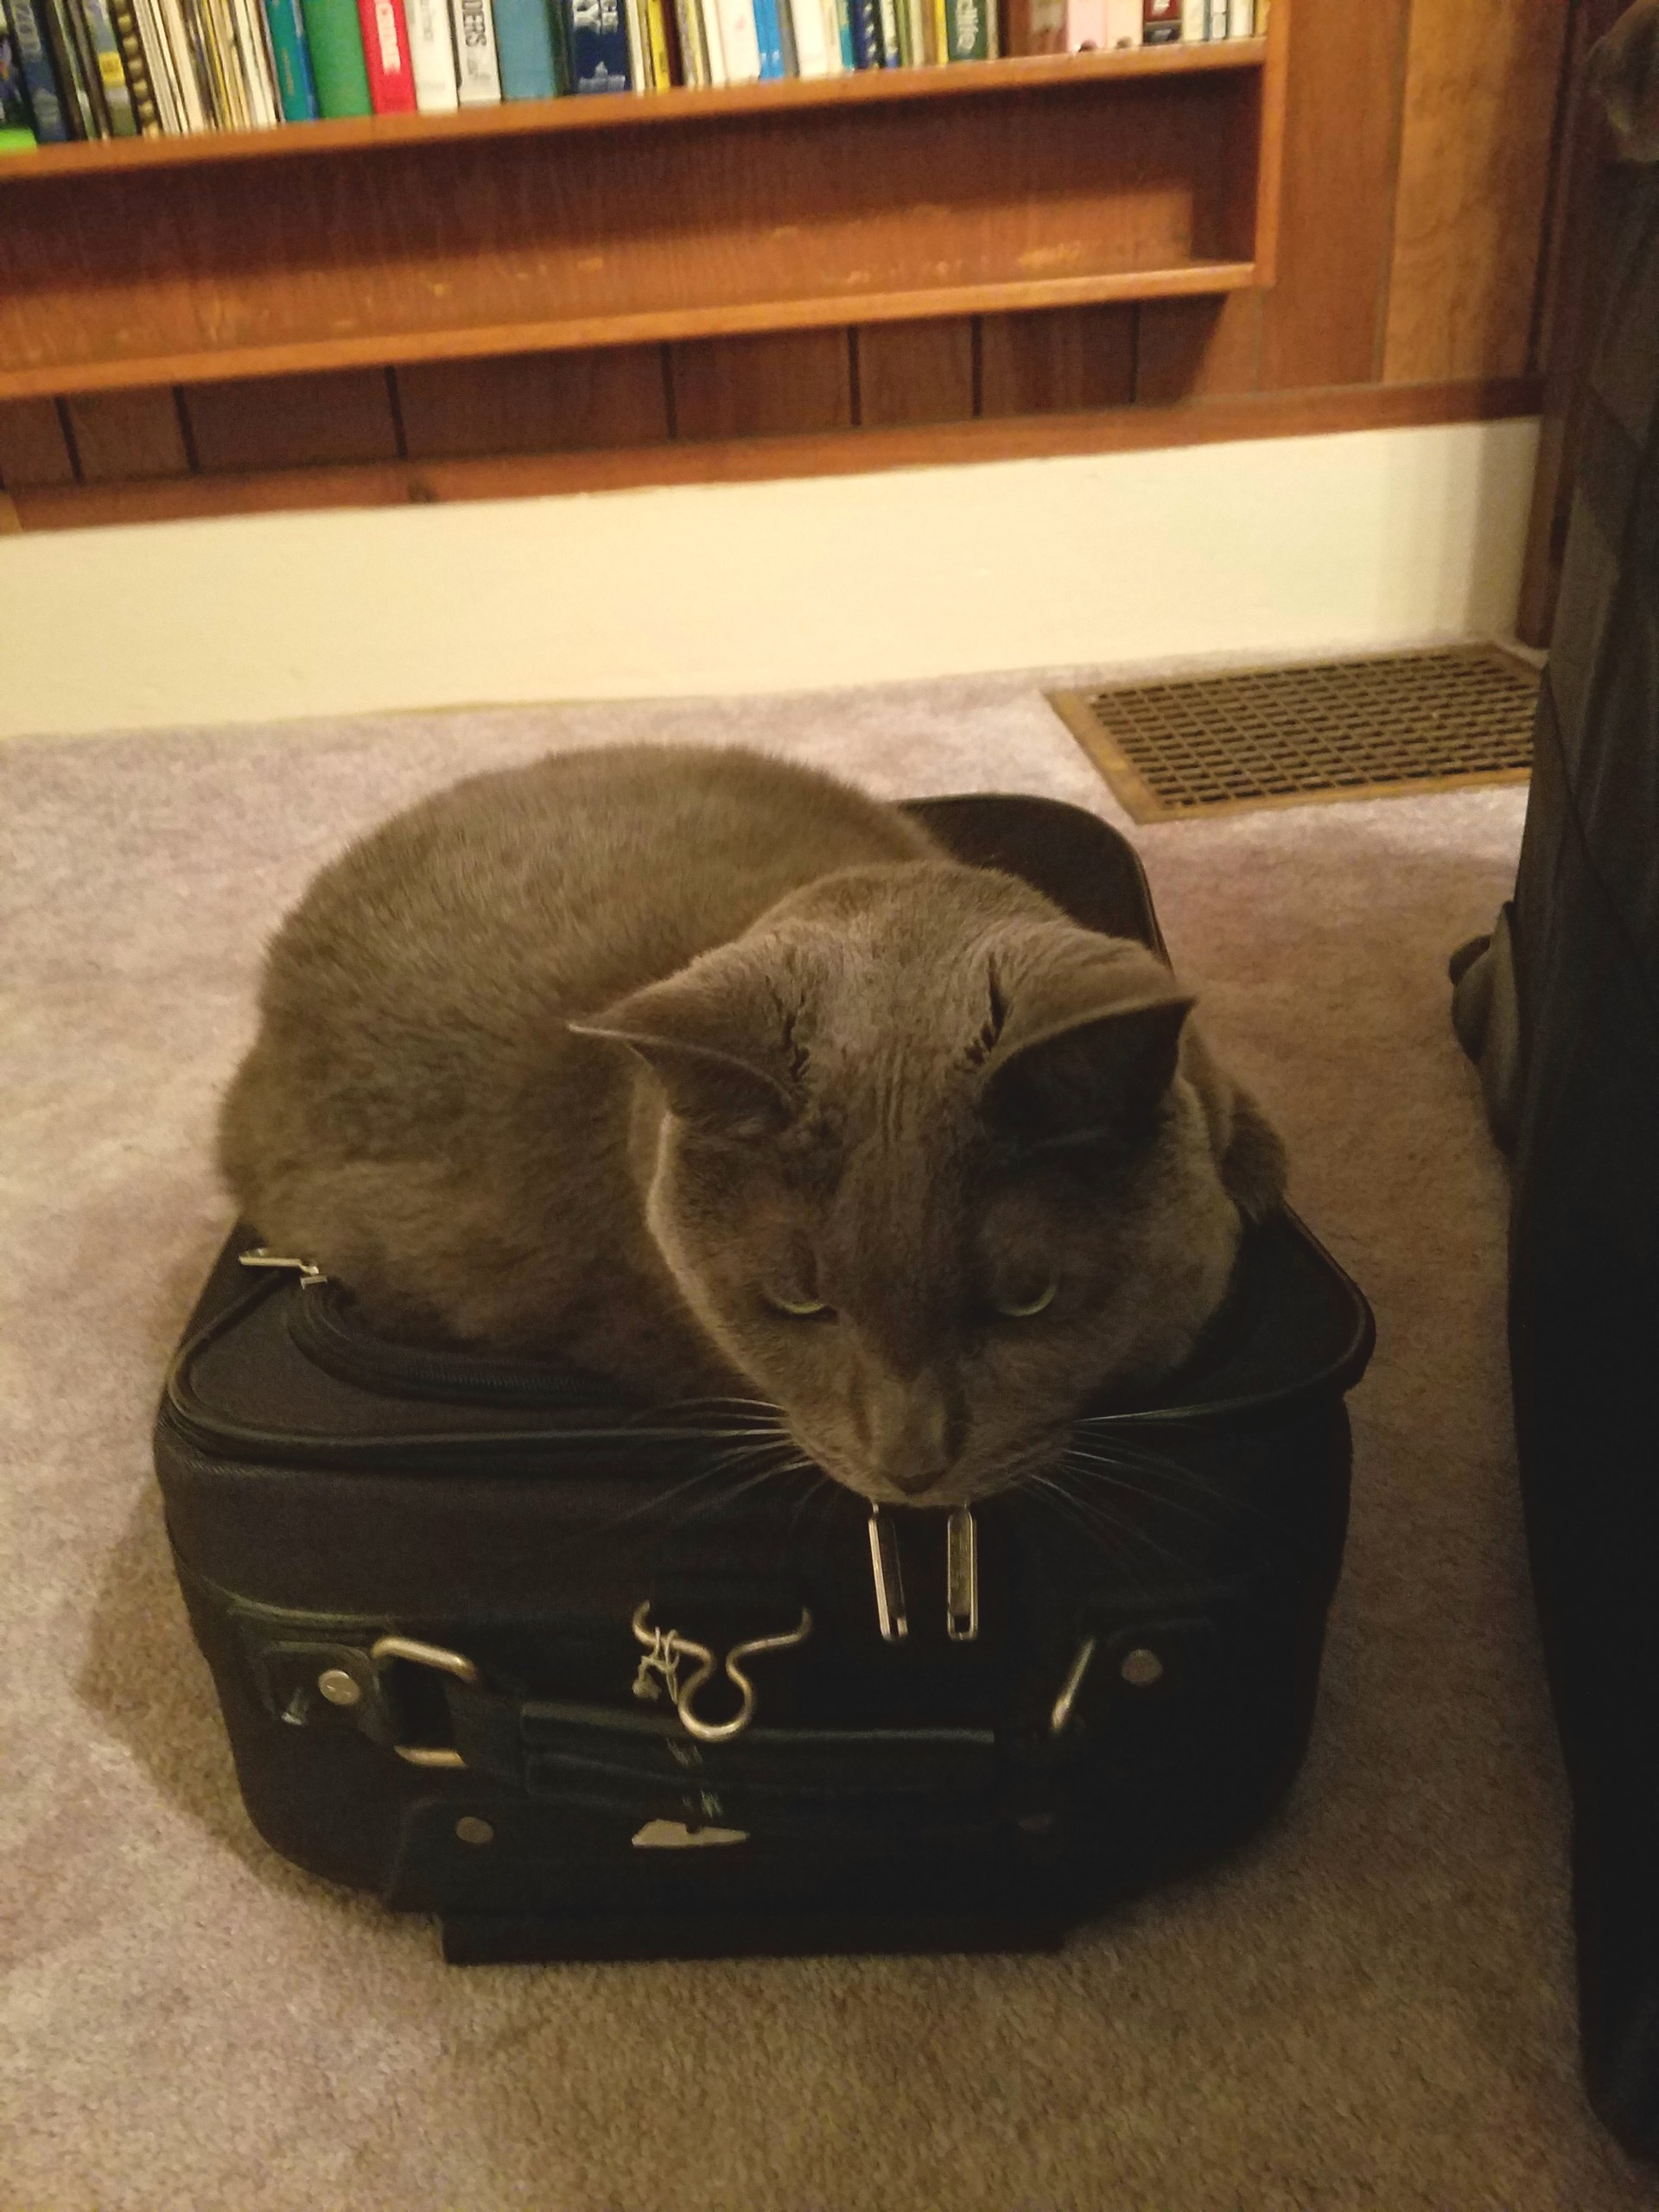 Grumpy-looking fat gray cat curled up on a black carry-on rolling suitcase